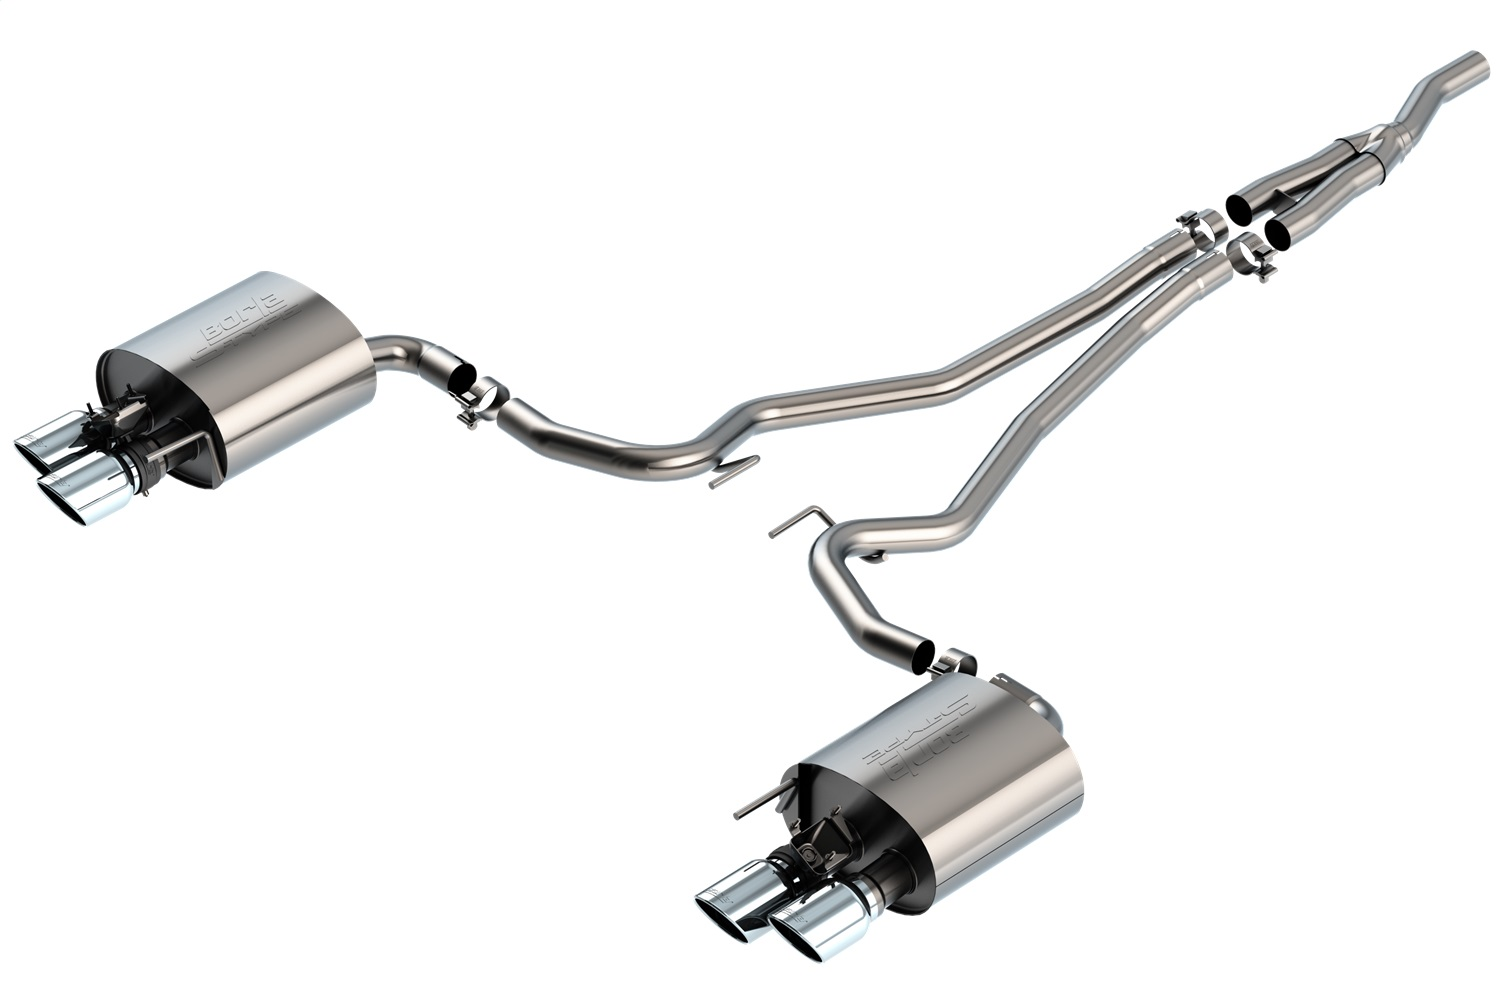 Borla 140827 S-Type Cat-Back Exhaust System Fits 19-20 Mustang